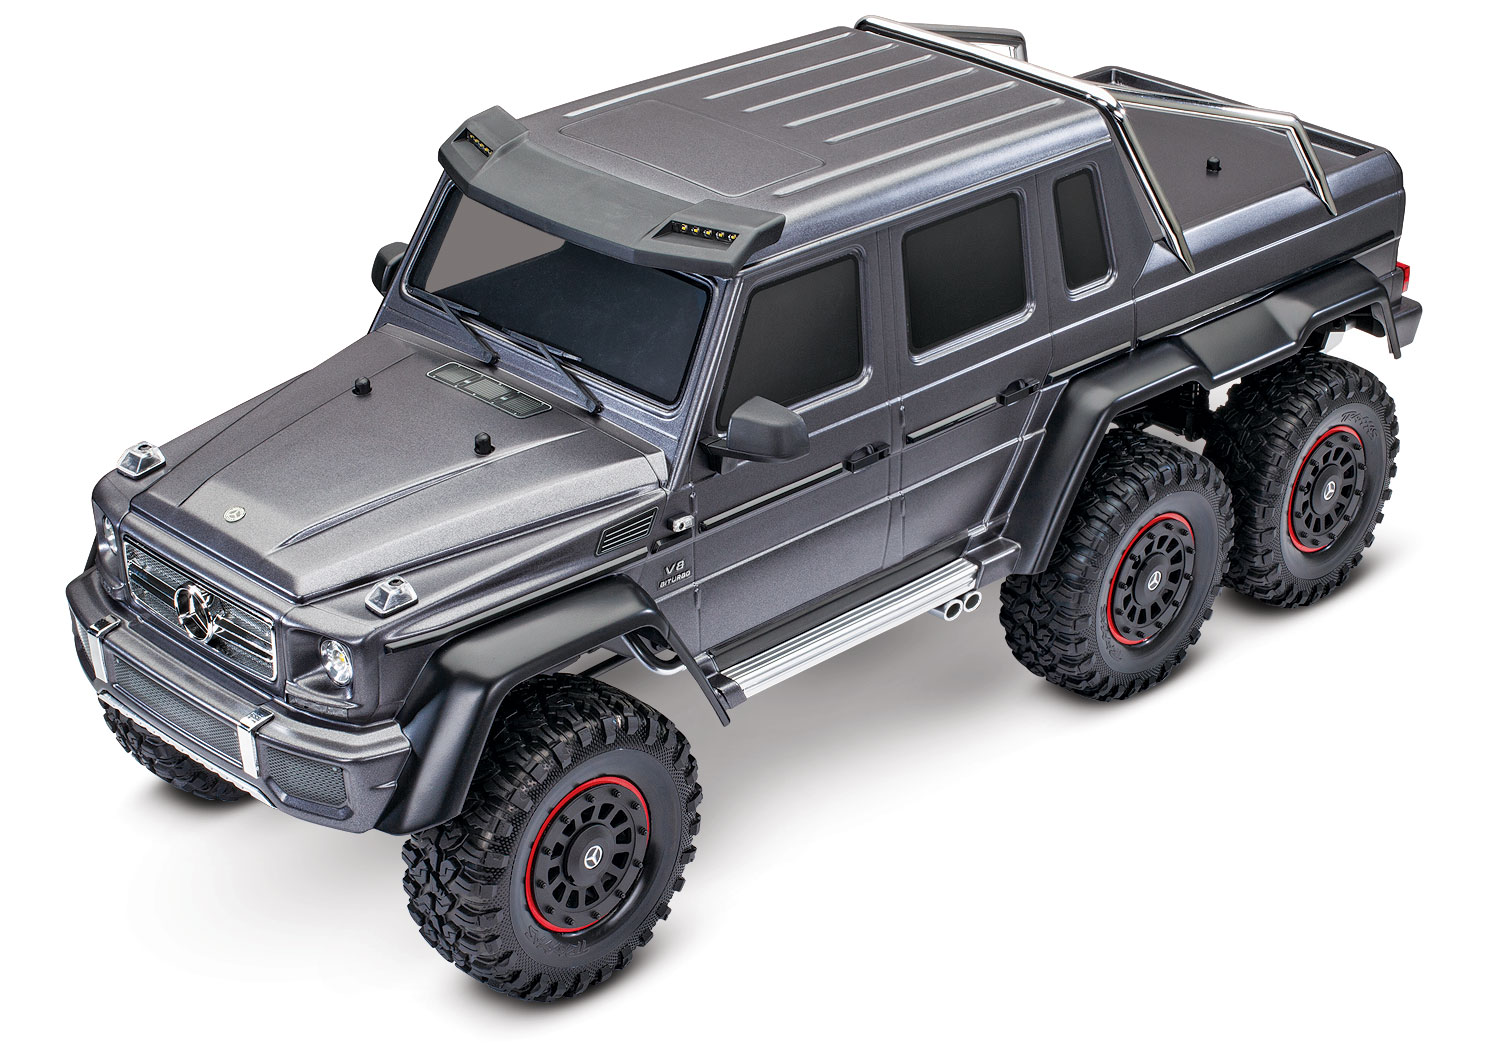 TRX-4 6x6 Exceptional Body Detail